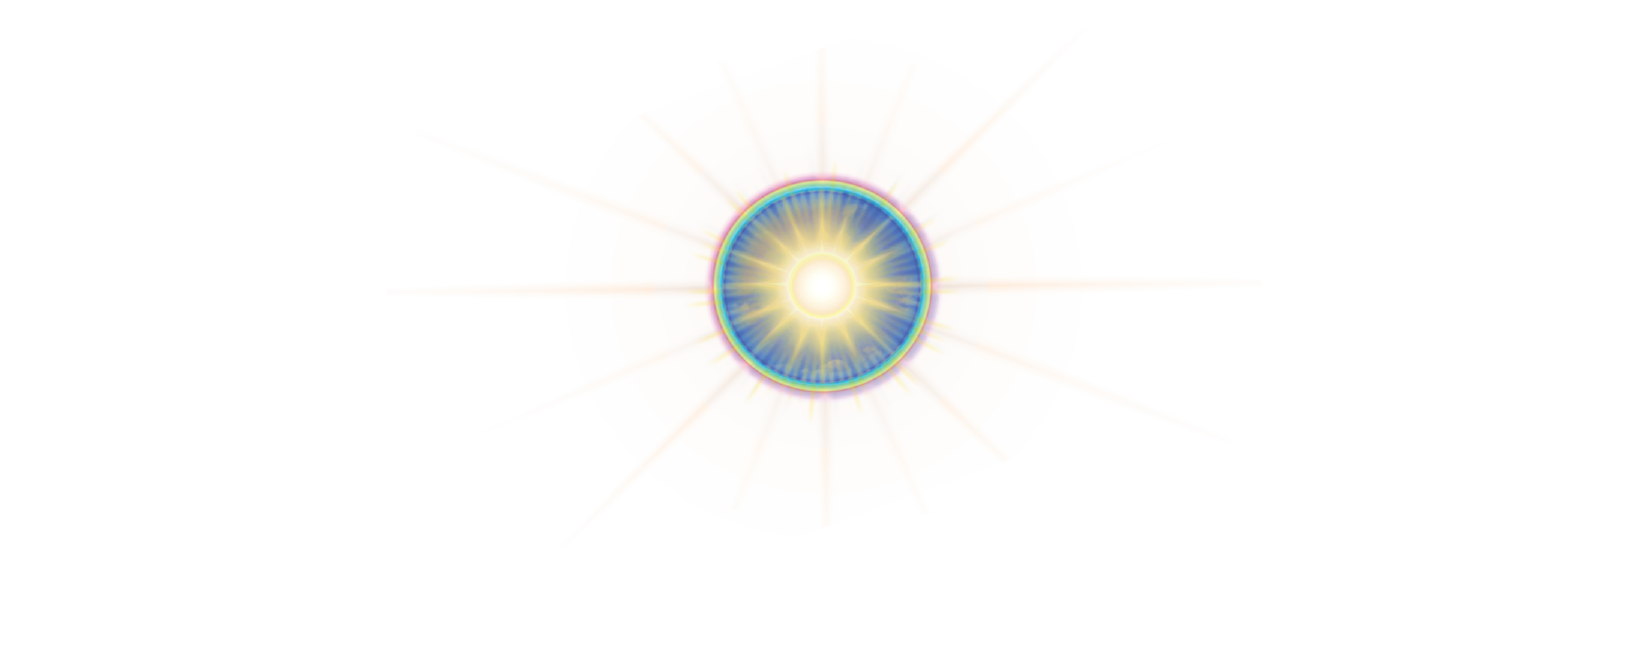 ClearLight Meditation Institute CL-Logo-white-07 Home